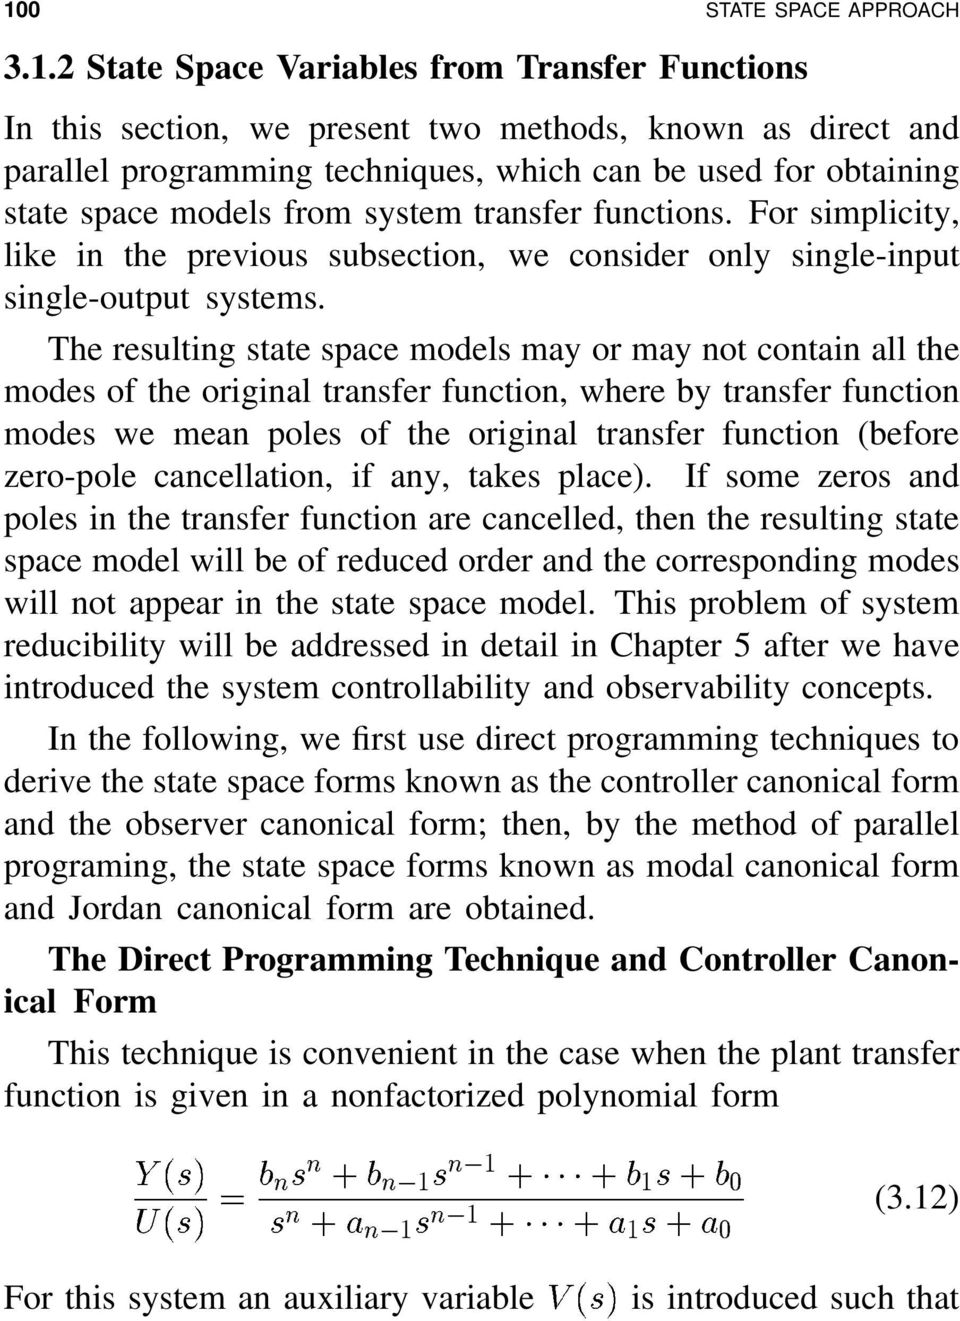 or may not contain all the modes of the original transfer function, where by transfer function modes we mean poles of the original transfer function (before zero-pole cancellation, if any, takes